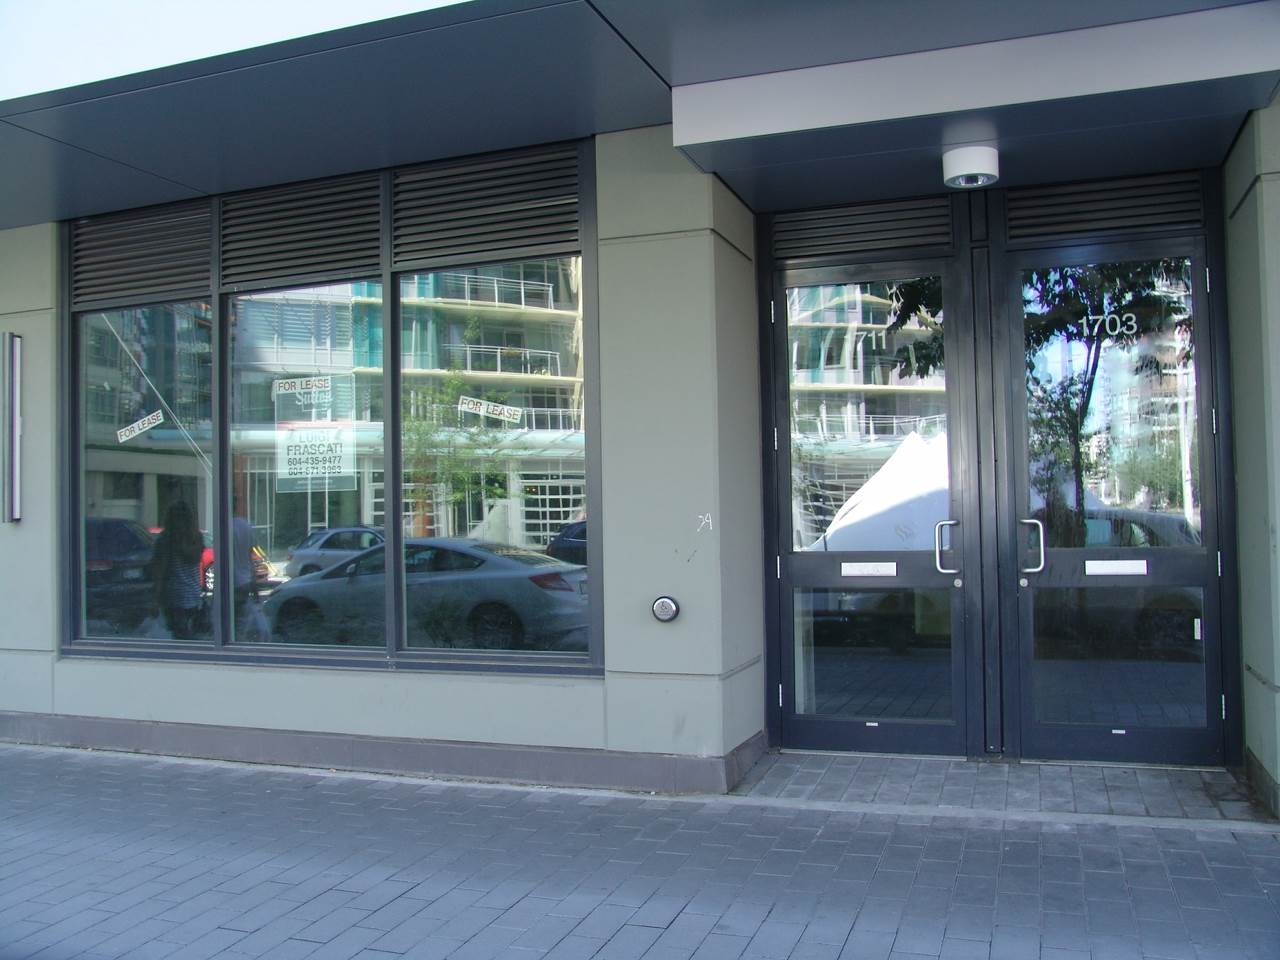 Main Photo: 1711 MANITOBA Street in Vancouver: False Creek Commercial for lease (Vancouver West)  : MLS®# C8006501